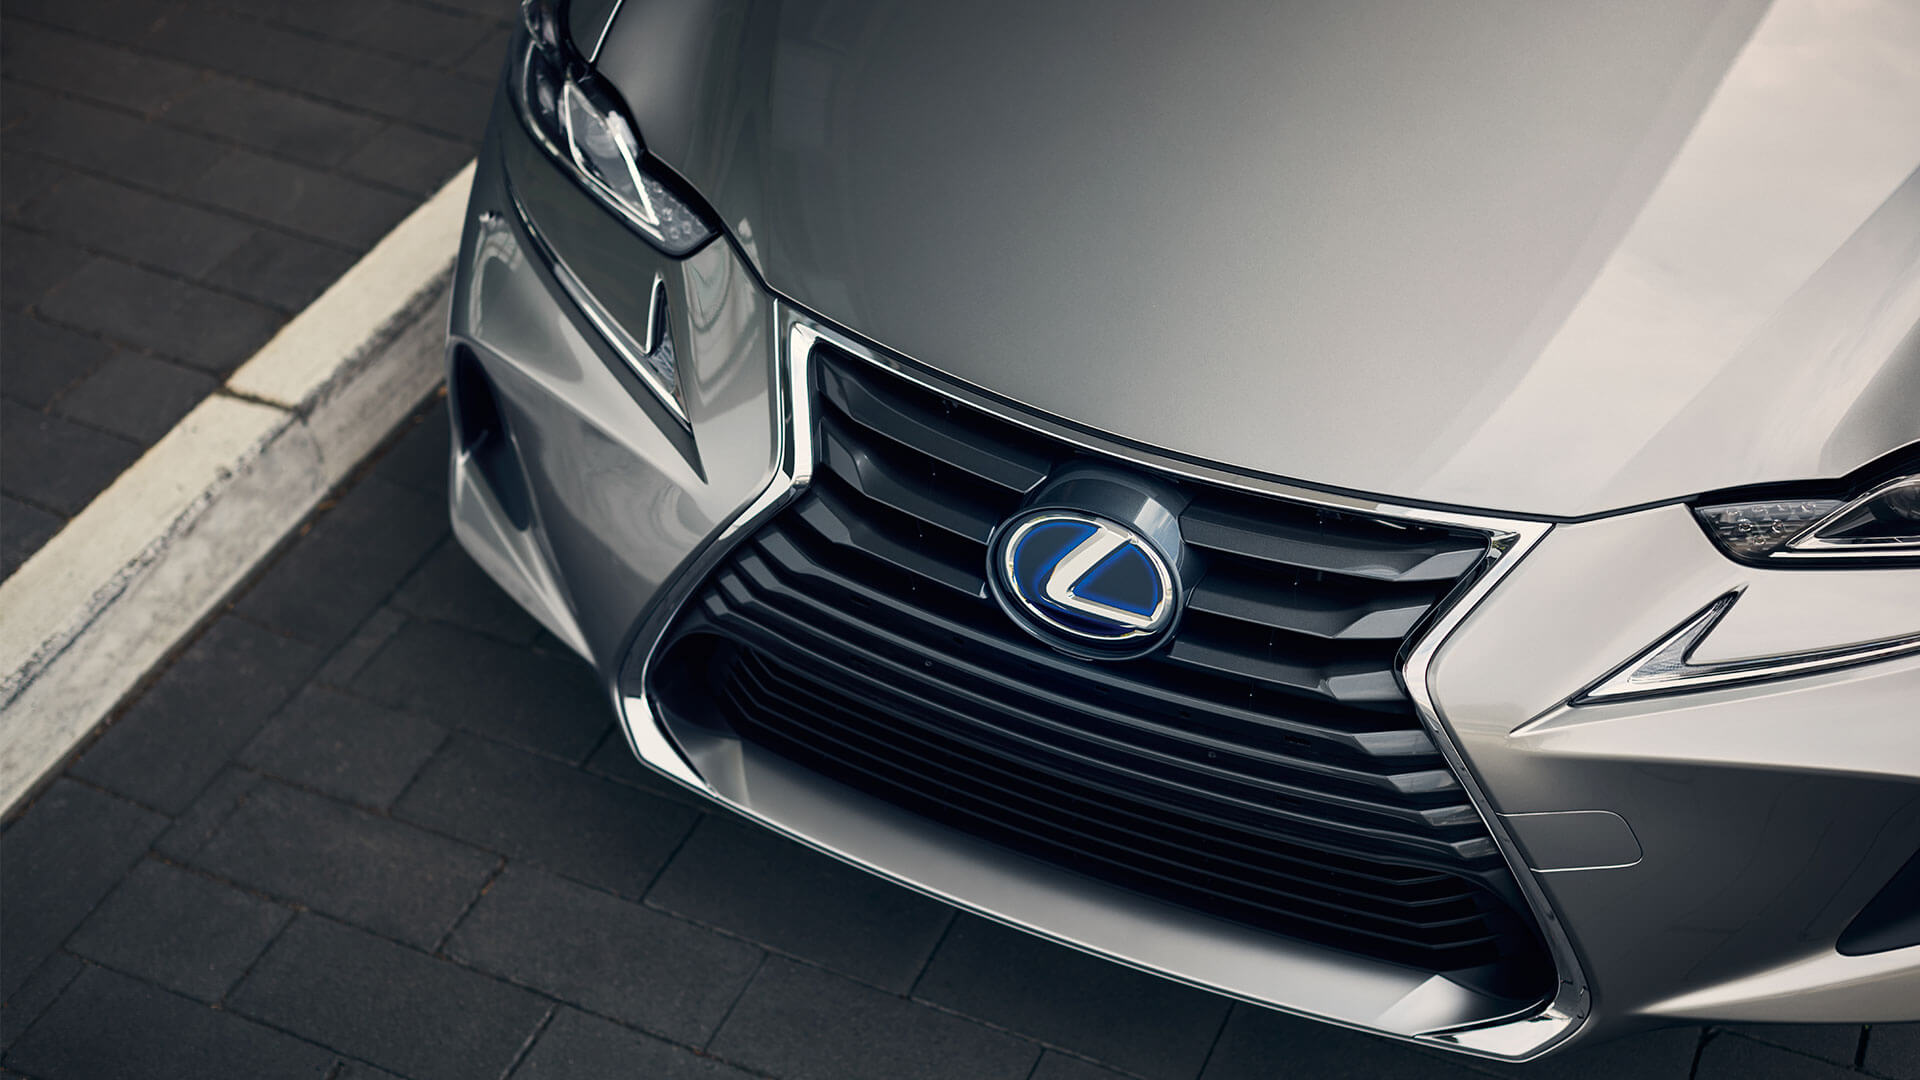 2017 lexus is 300h features spindle grill